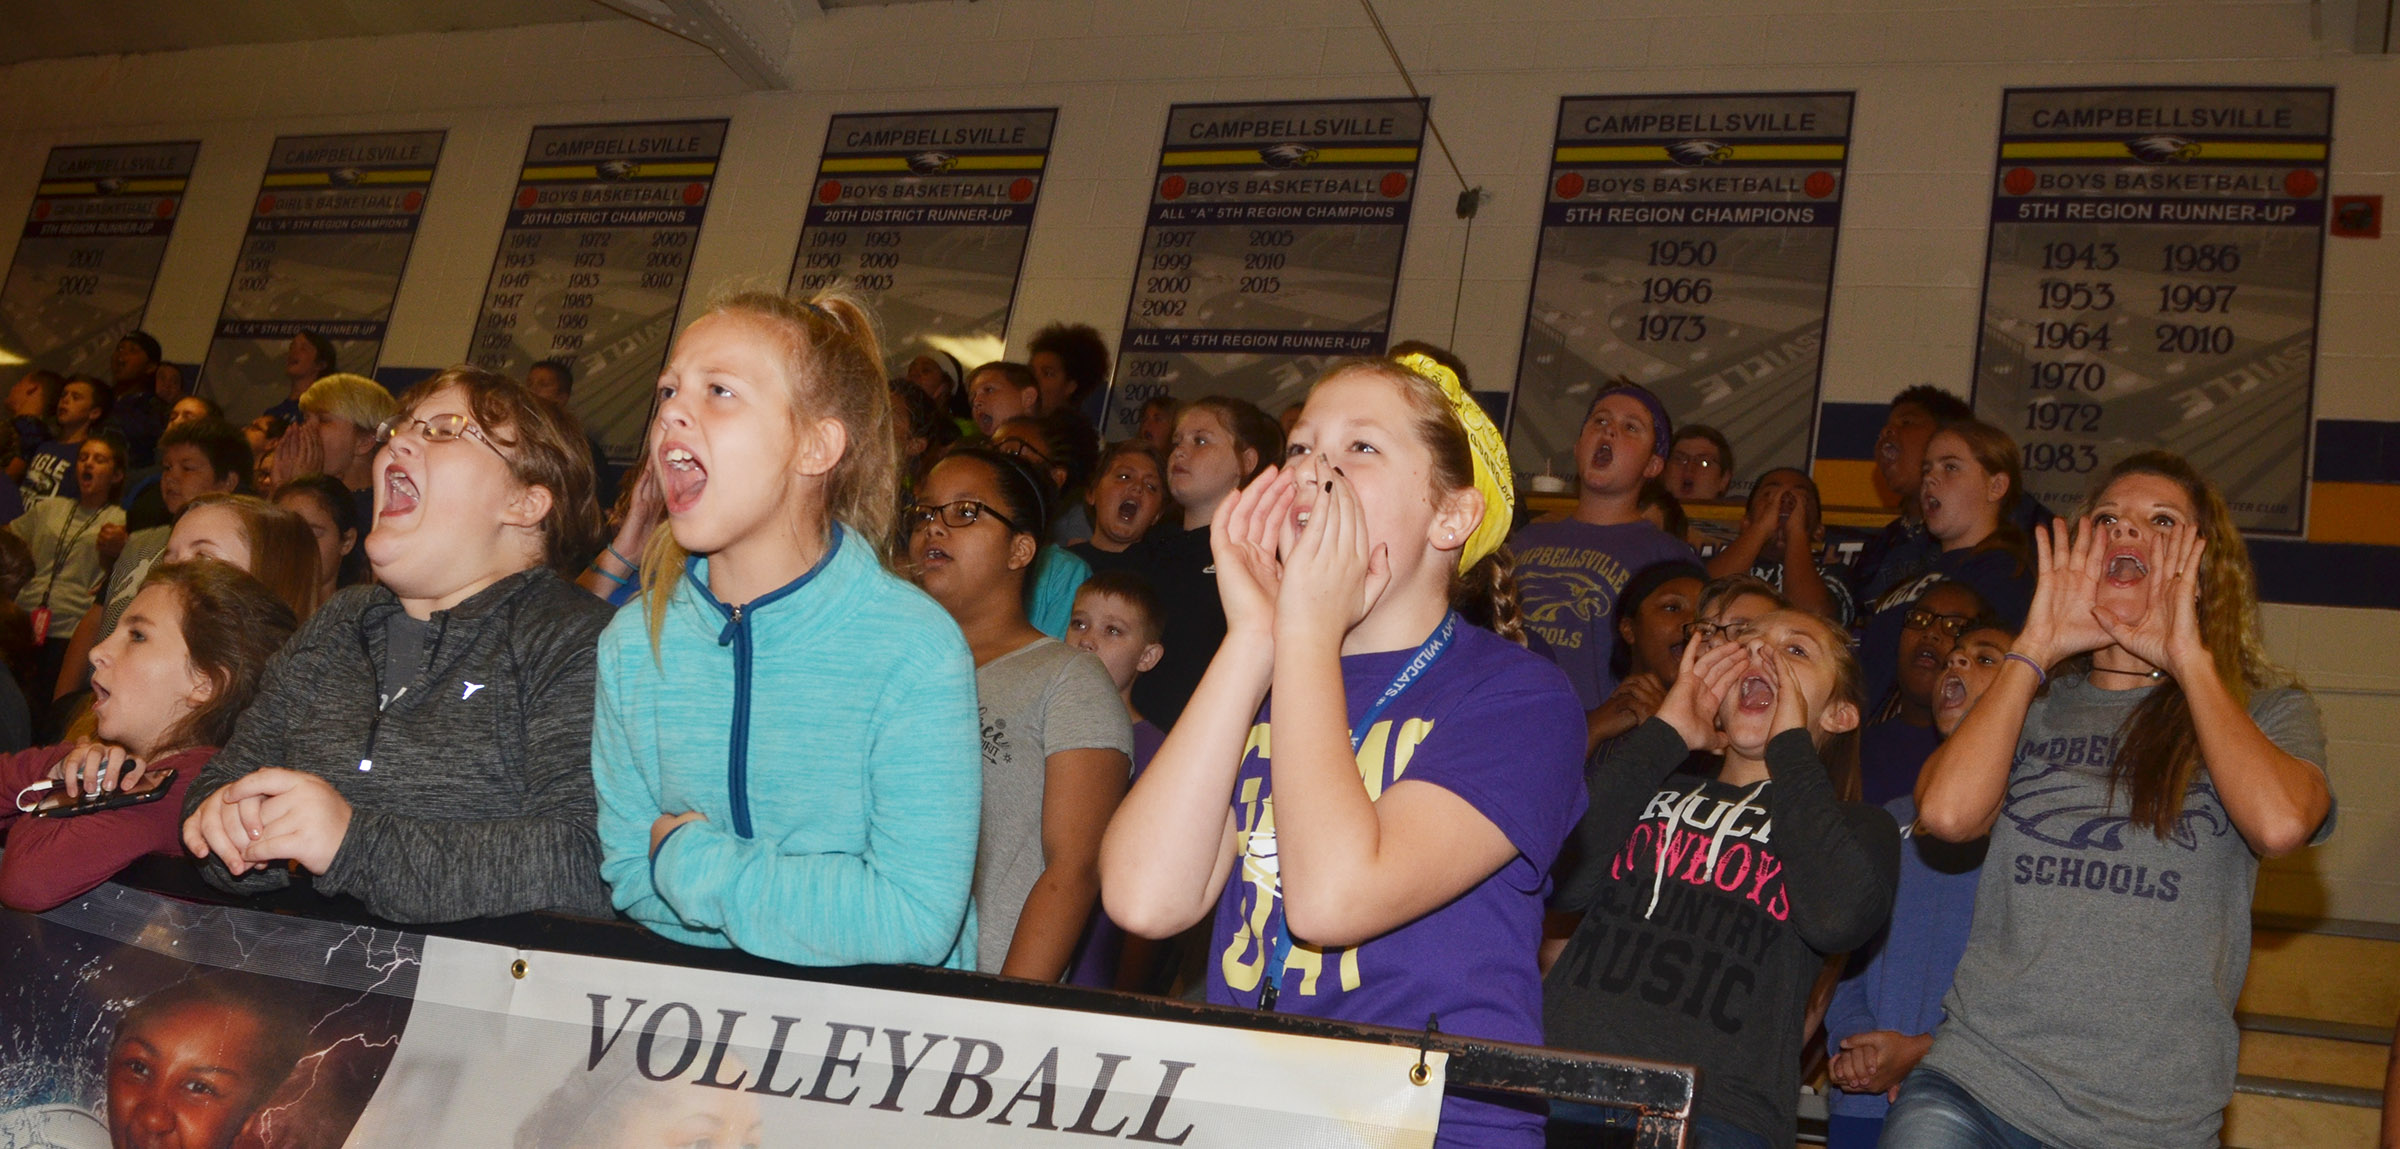 CMS students cheer as their classmates play a spirit game.